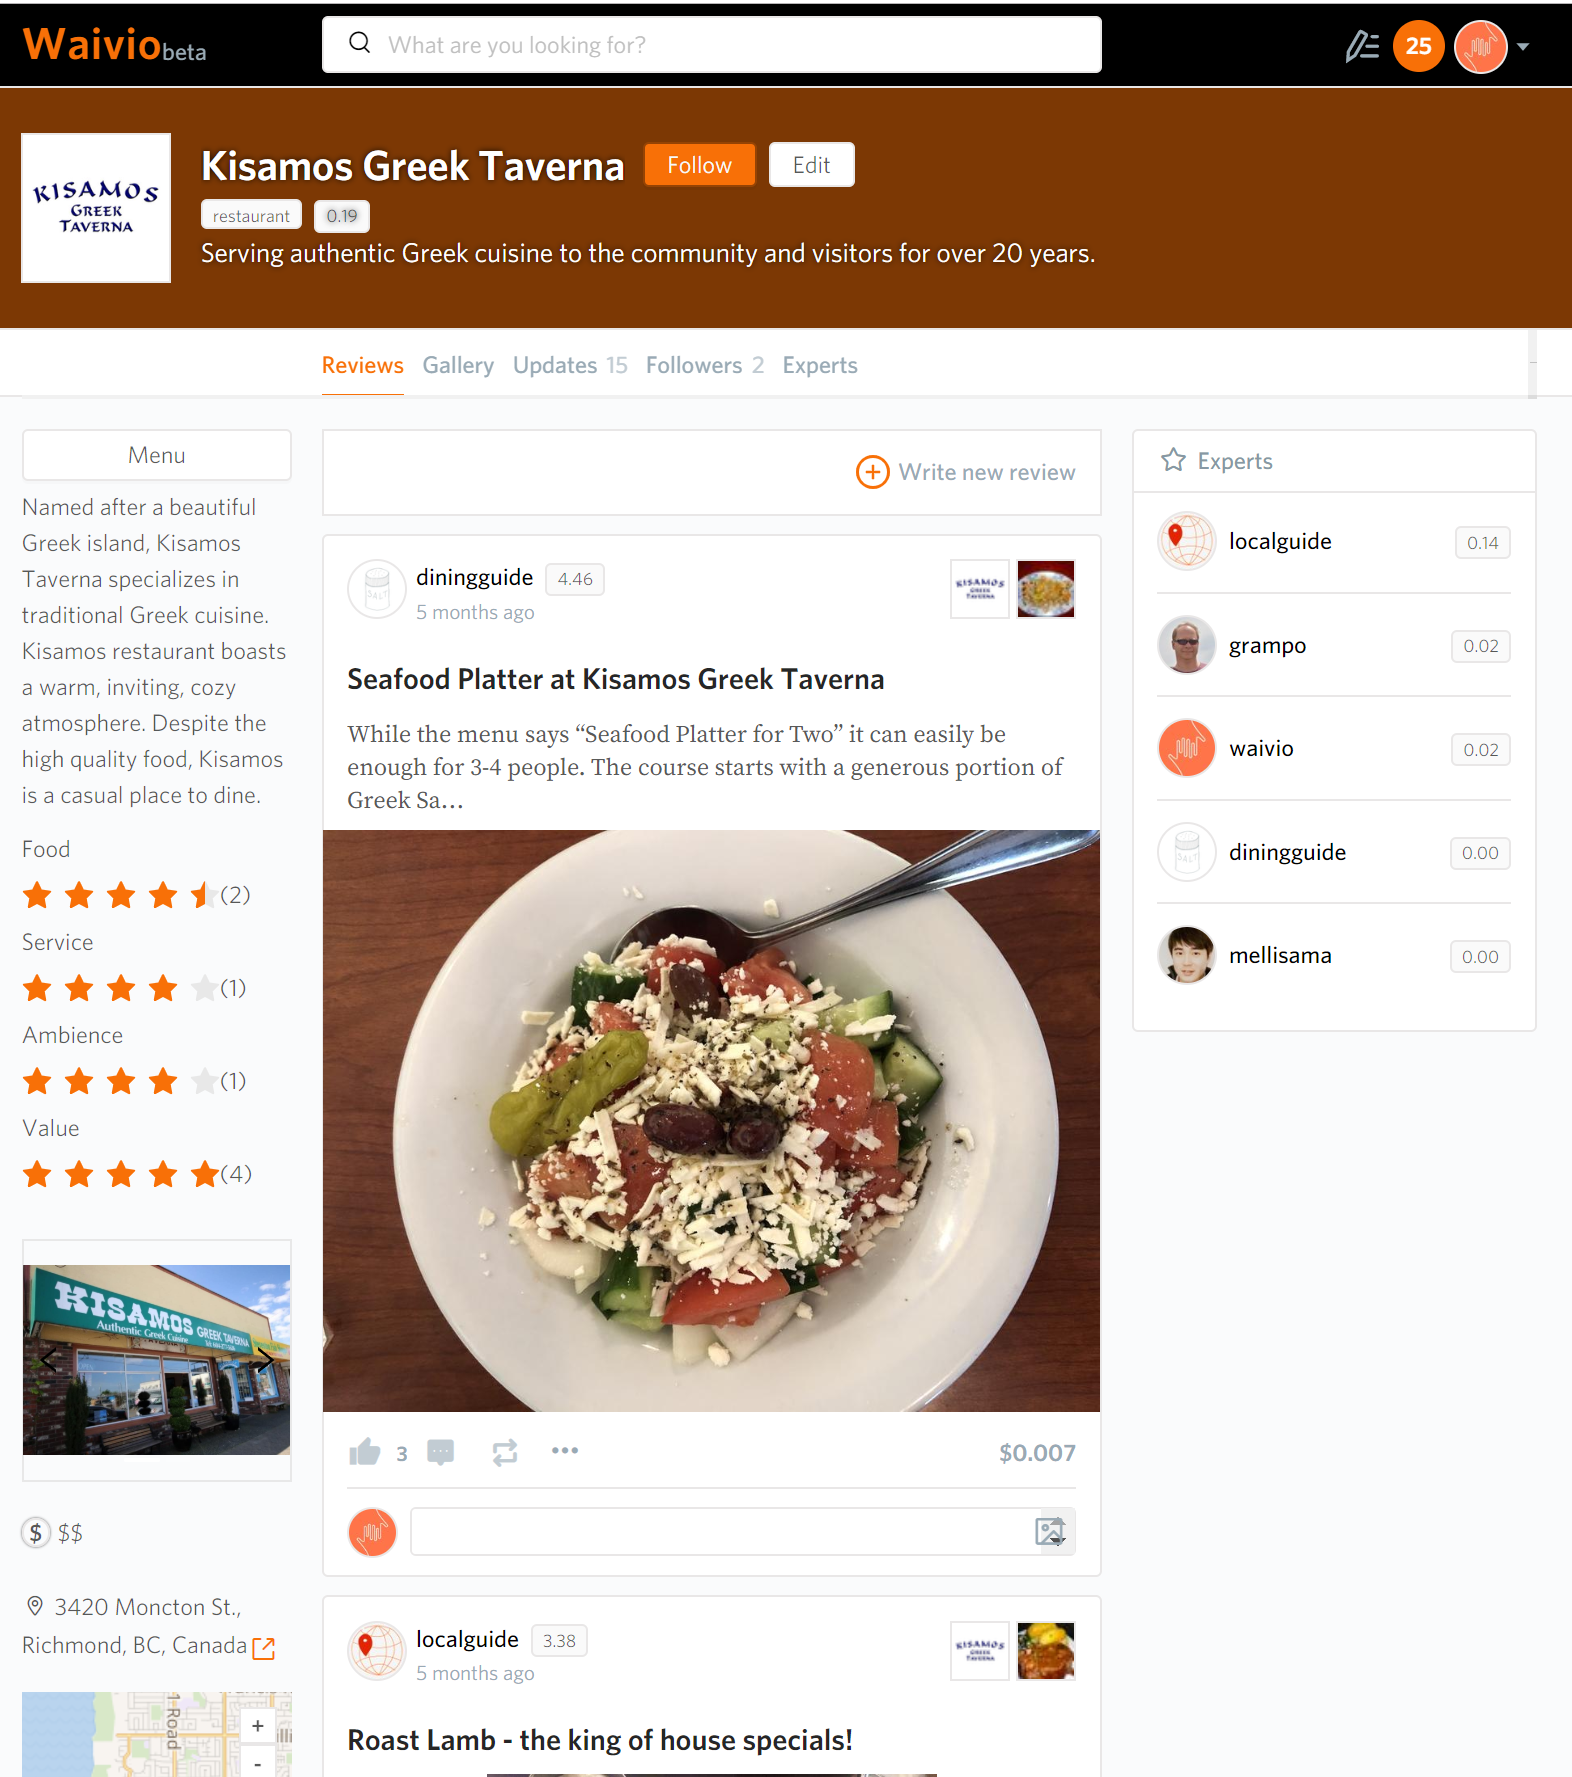 Example of a restaurant listing on Waivio